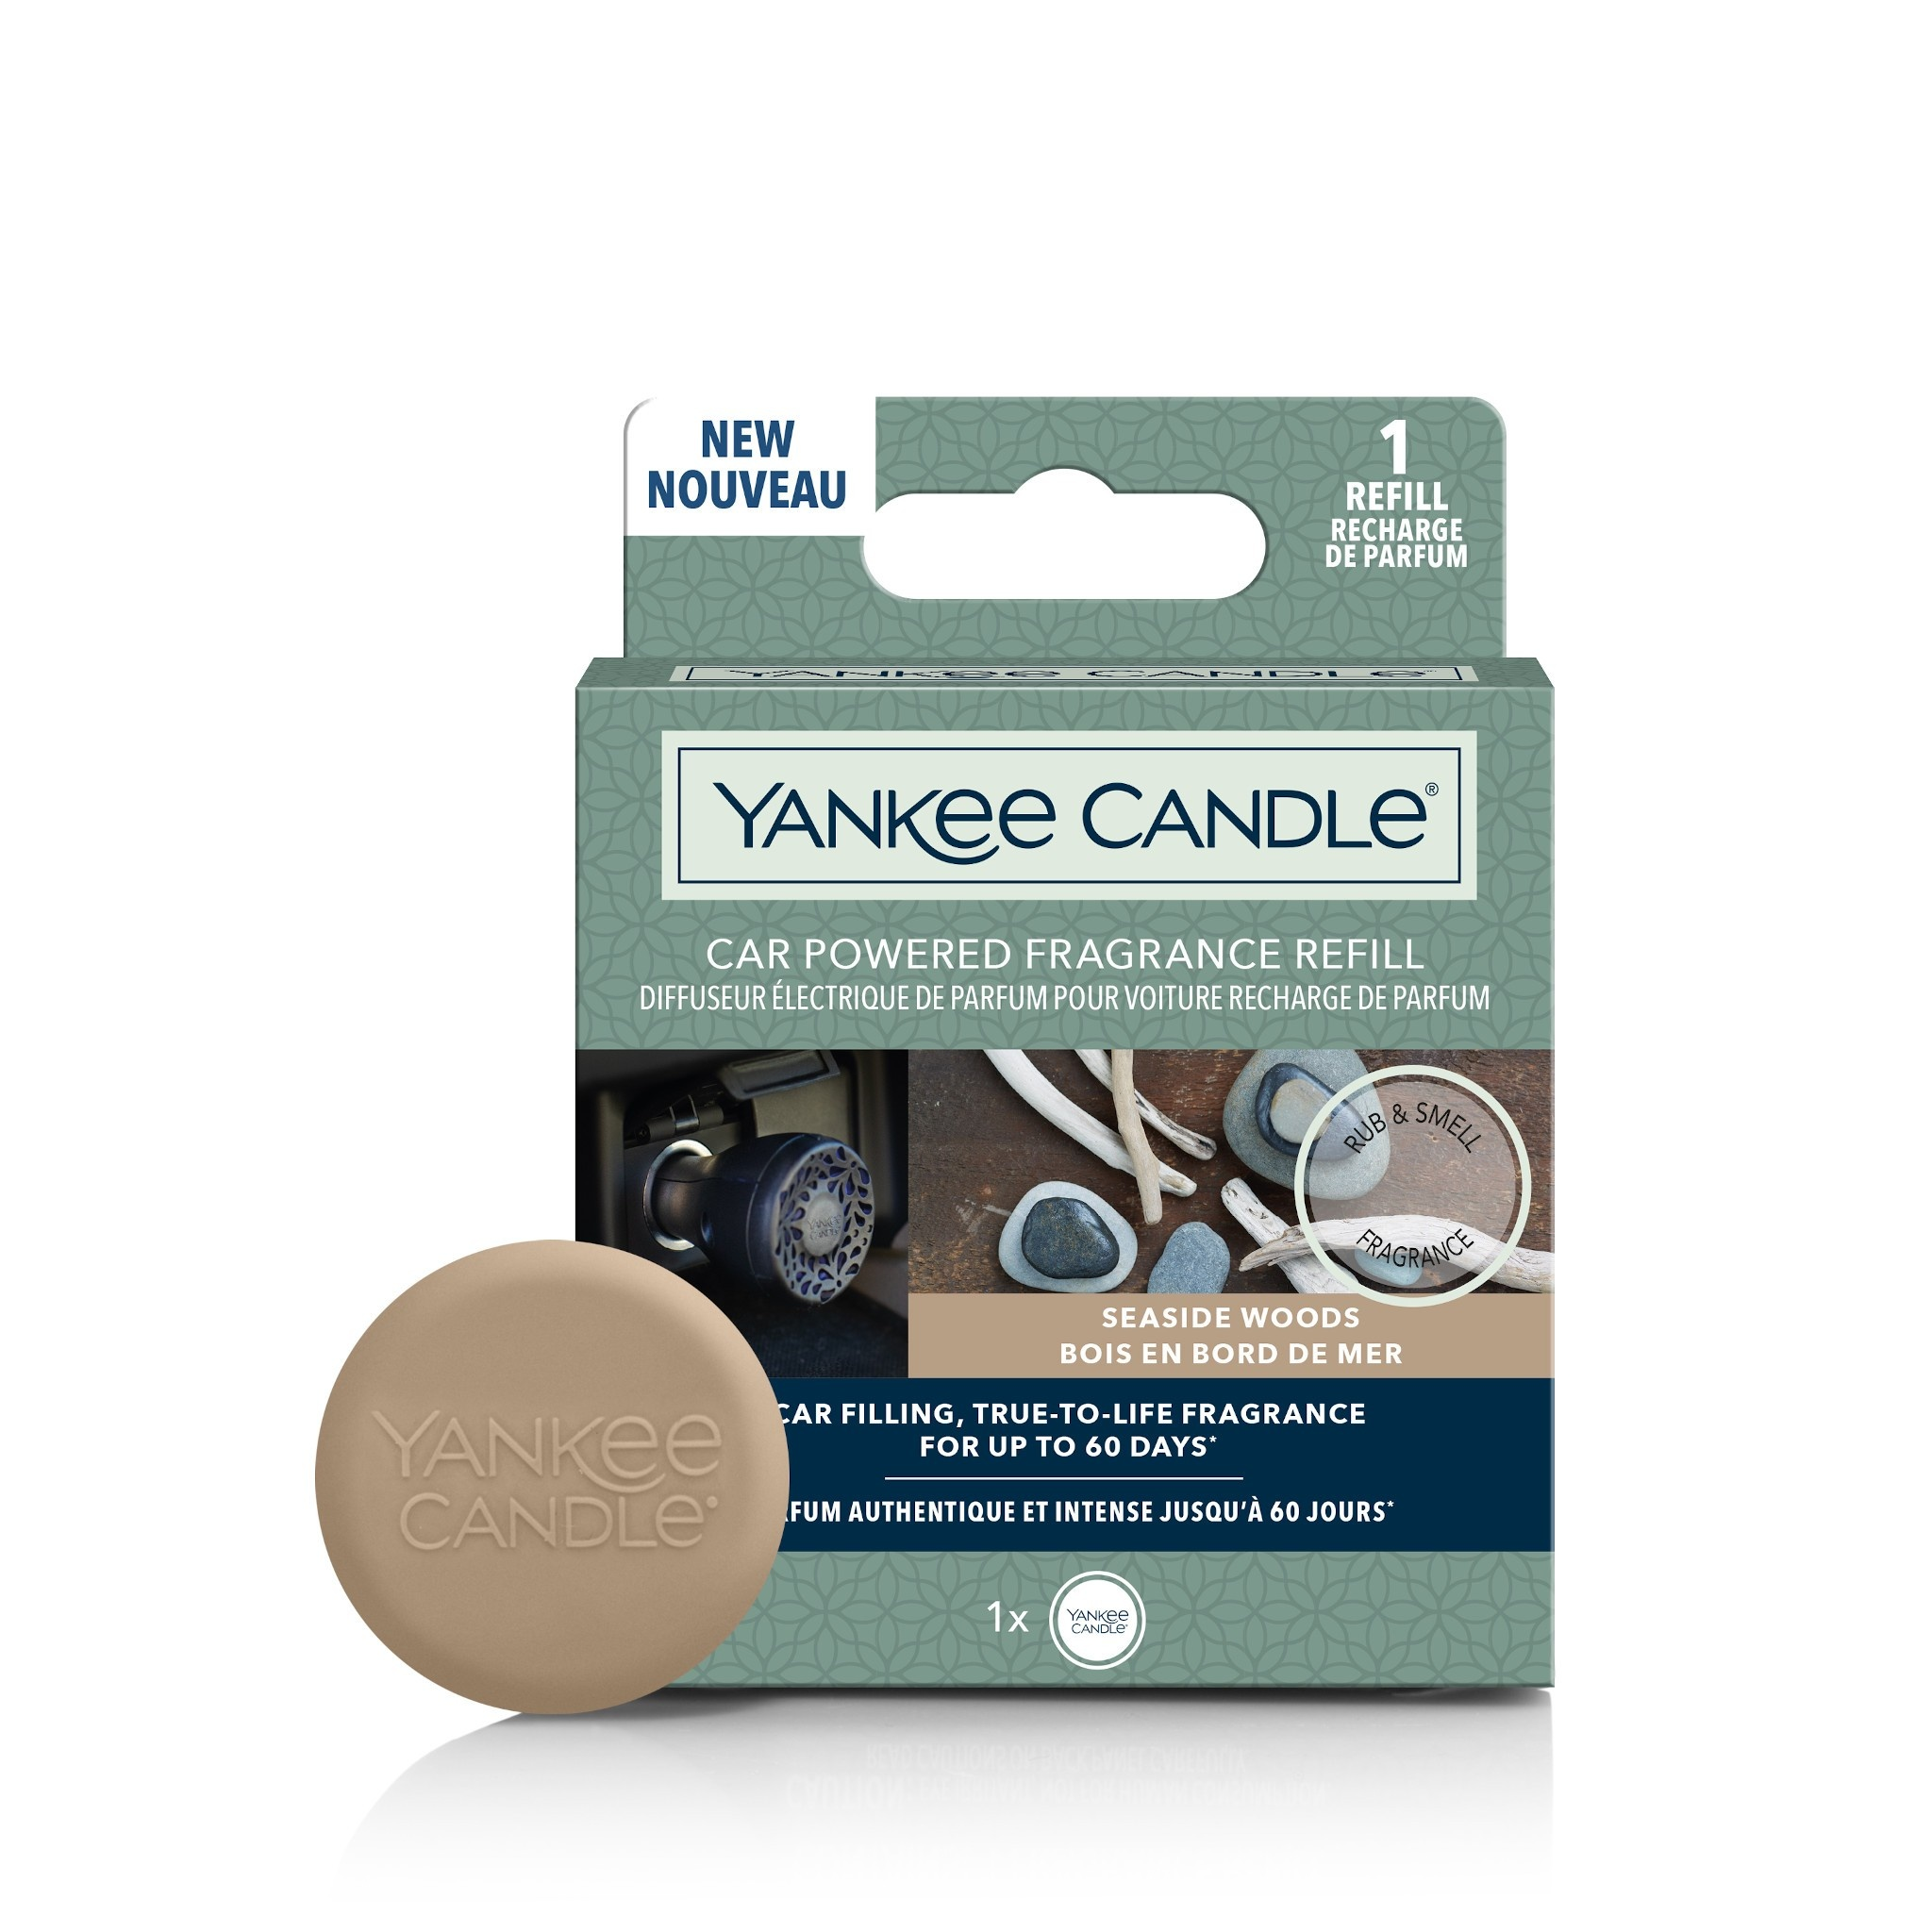 Yankee Candle - Seaside Woods Car Powered Fragrance Refill